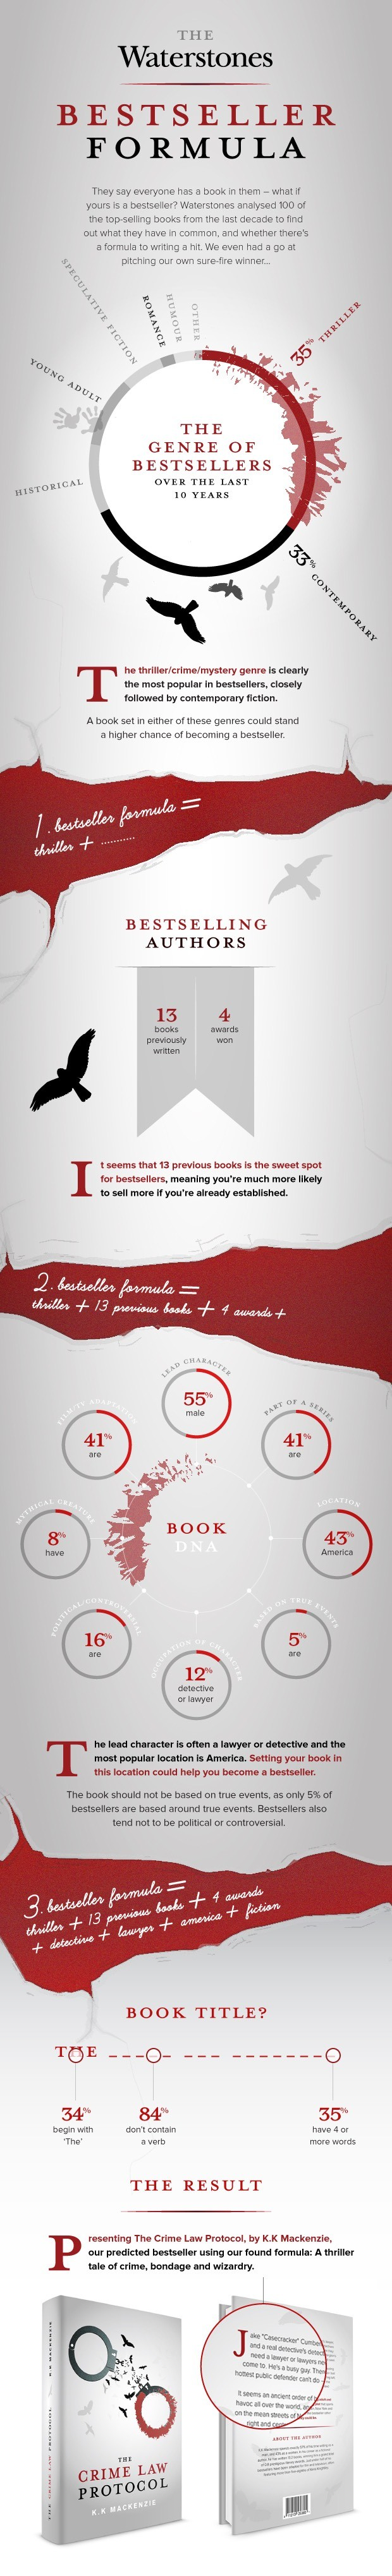 A formula for the bestselling book #infographic